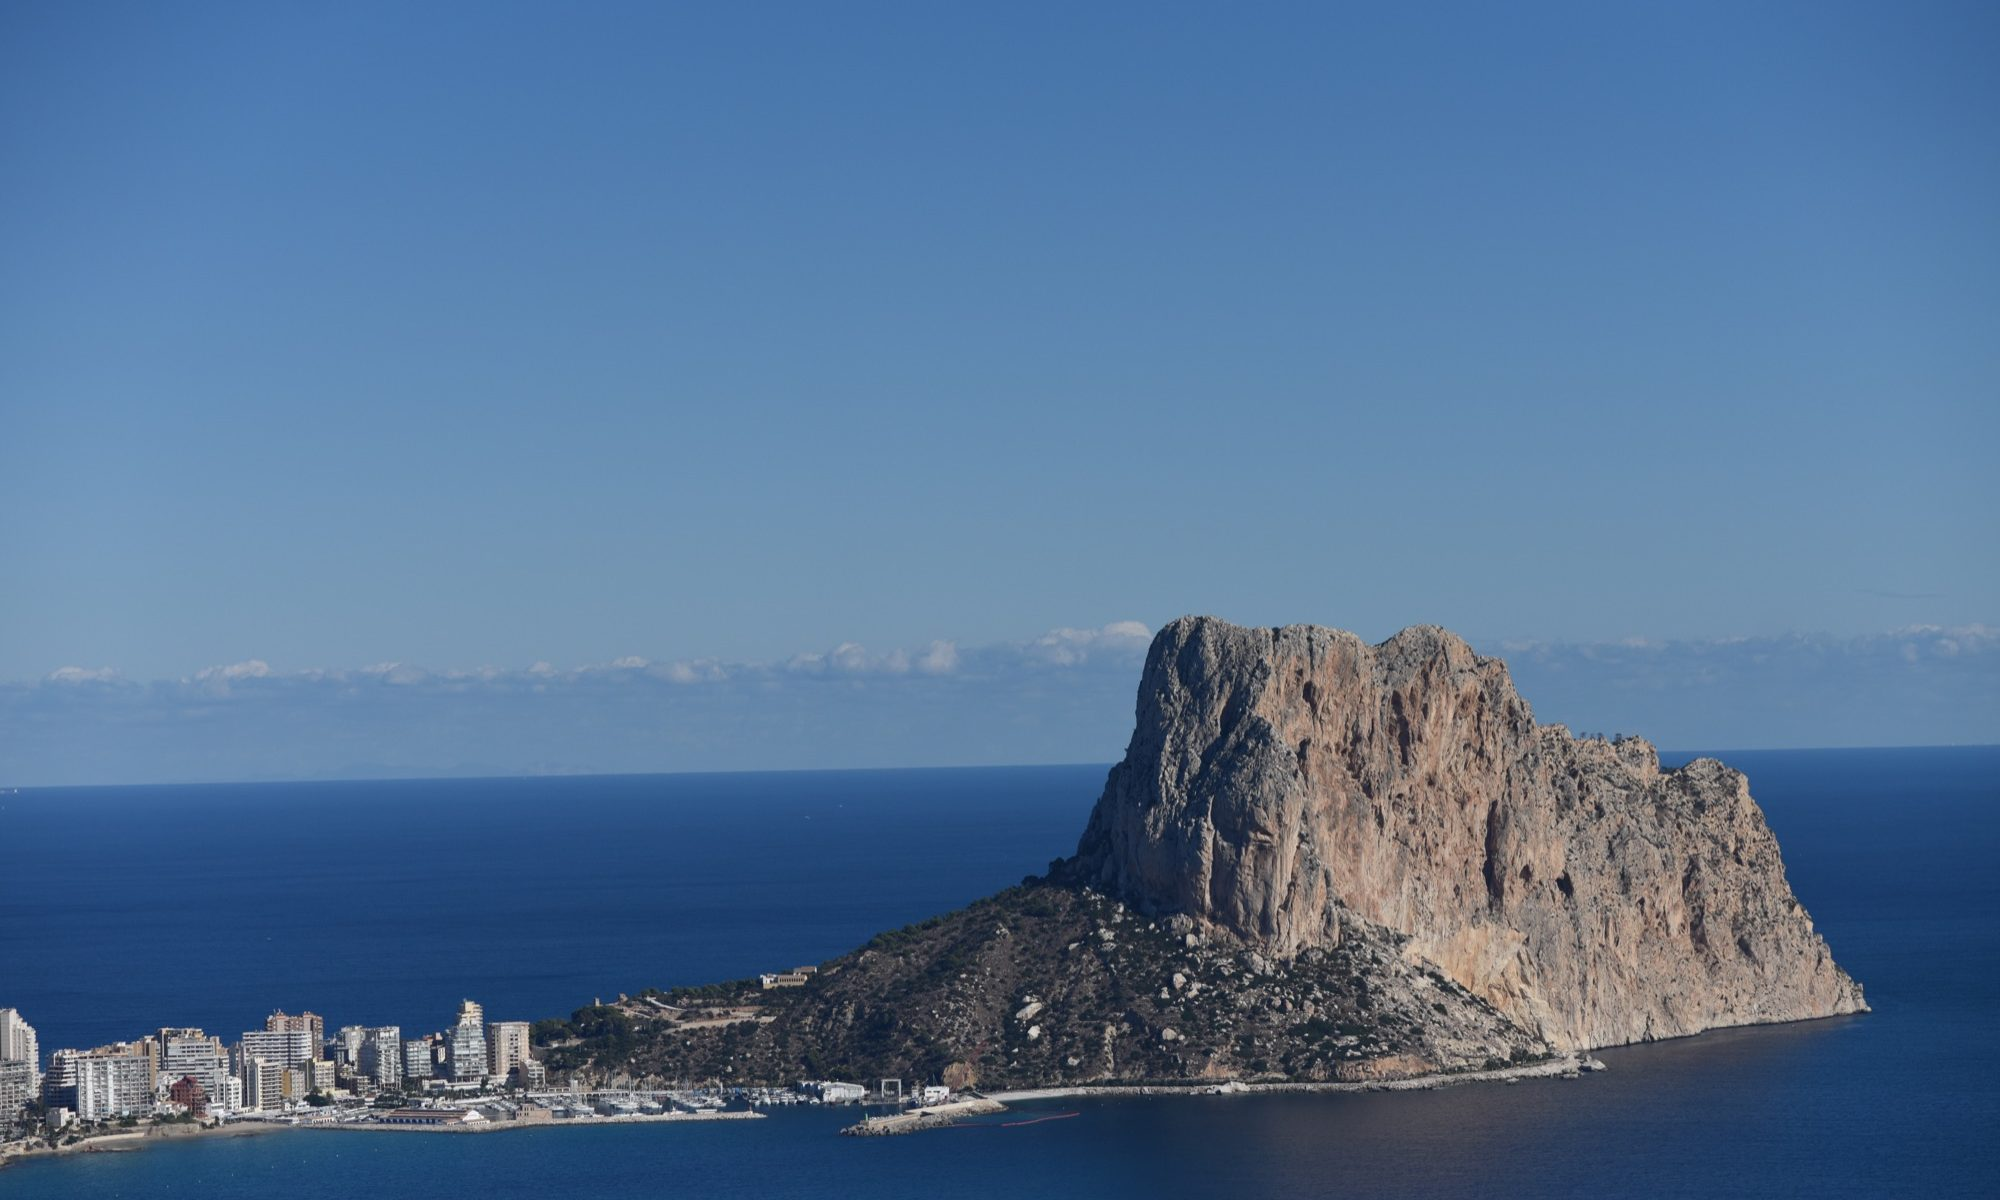 The Amazing Penon D'Ifach towering over Calpe.